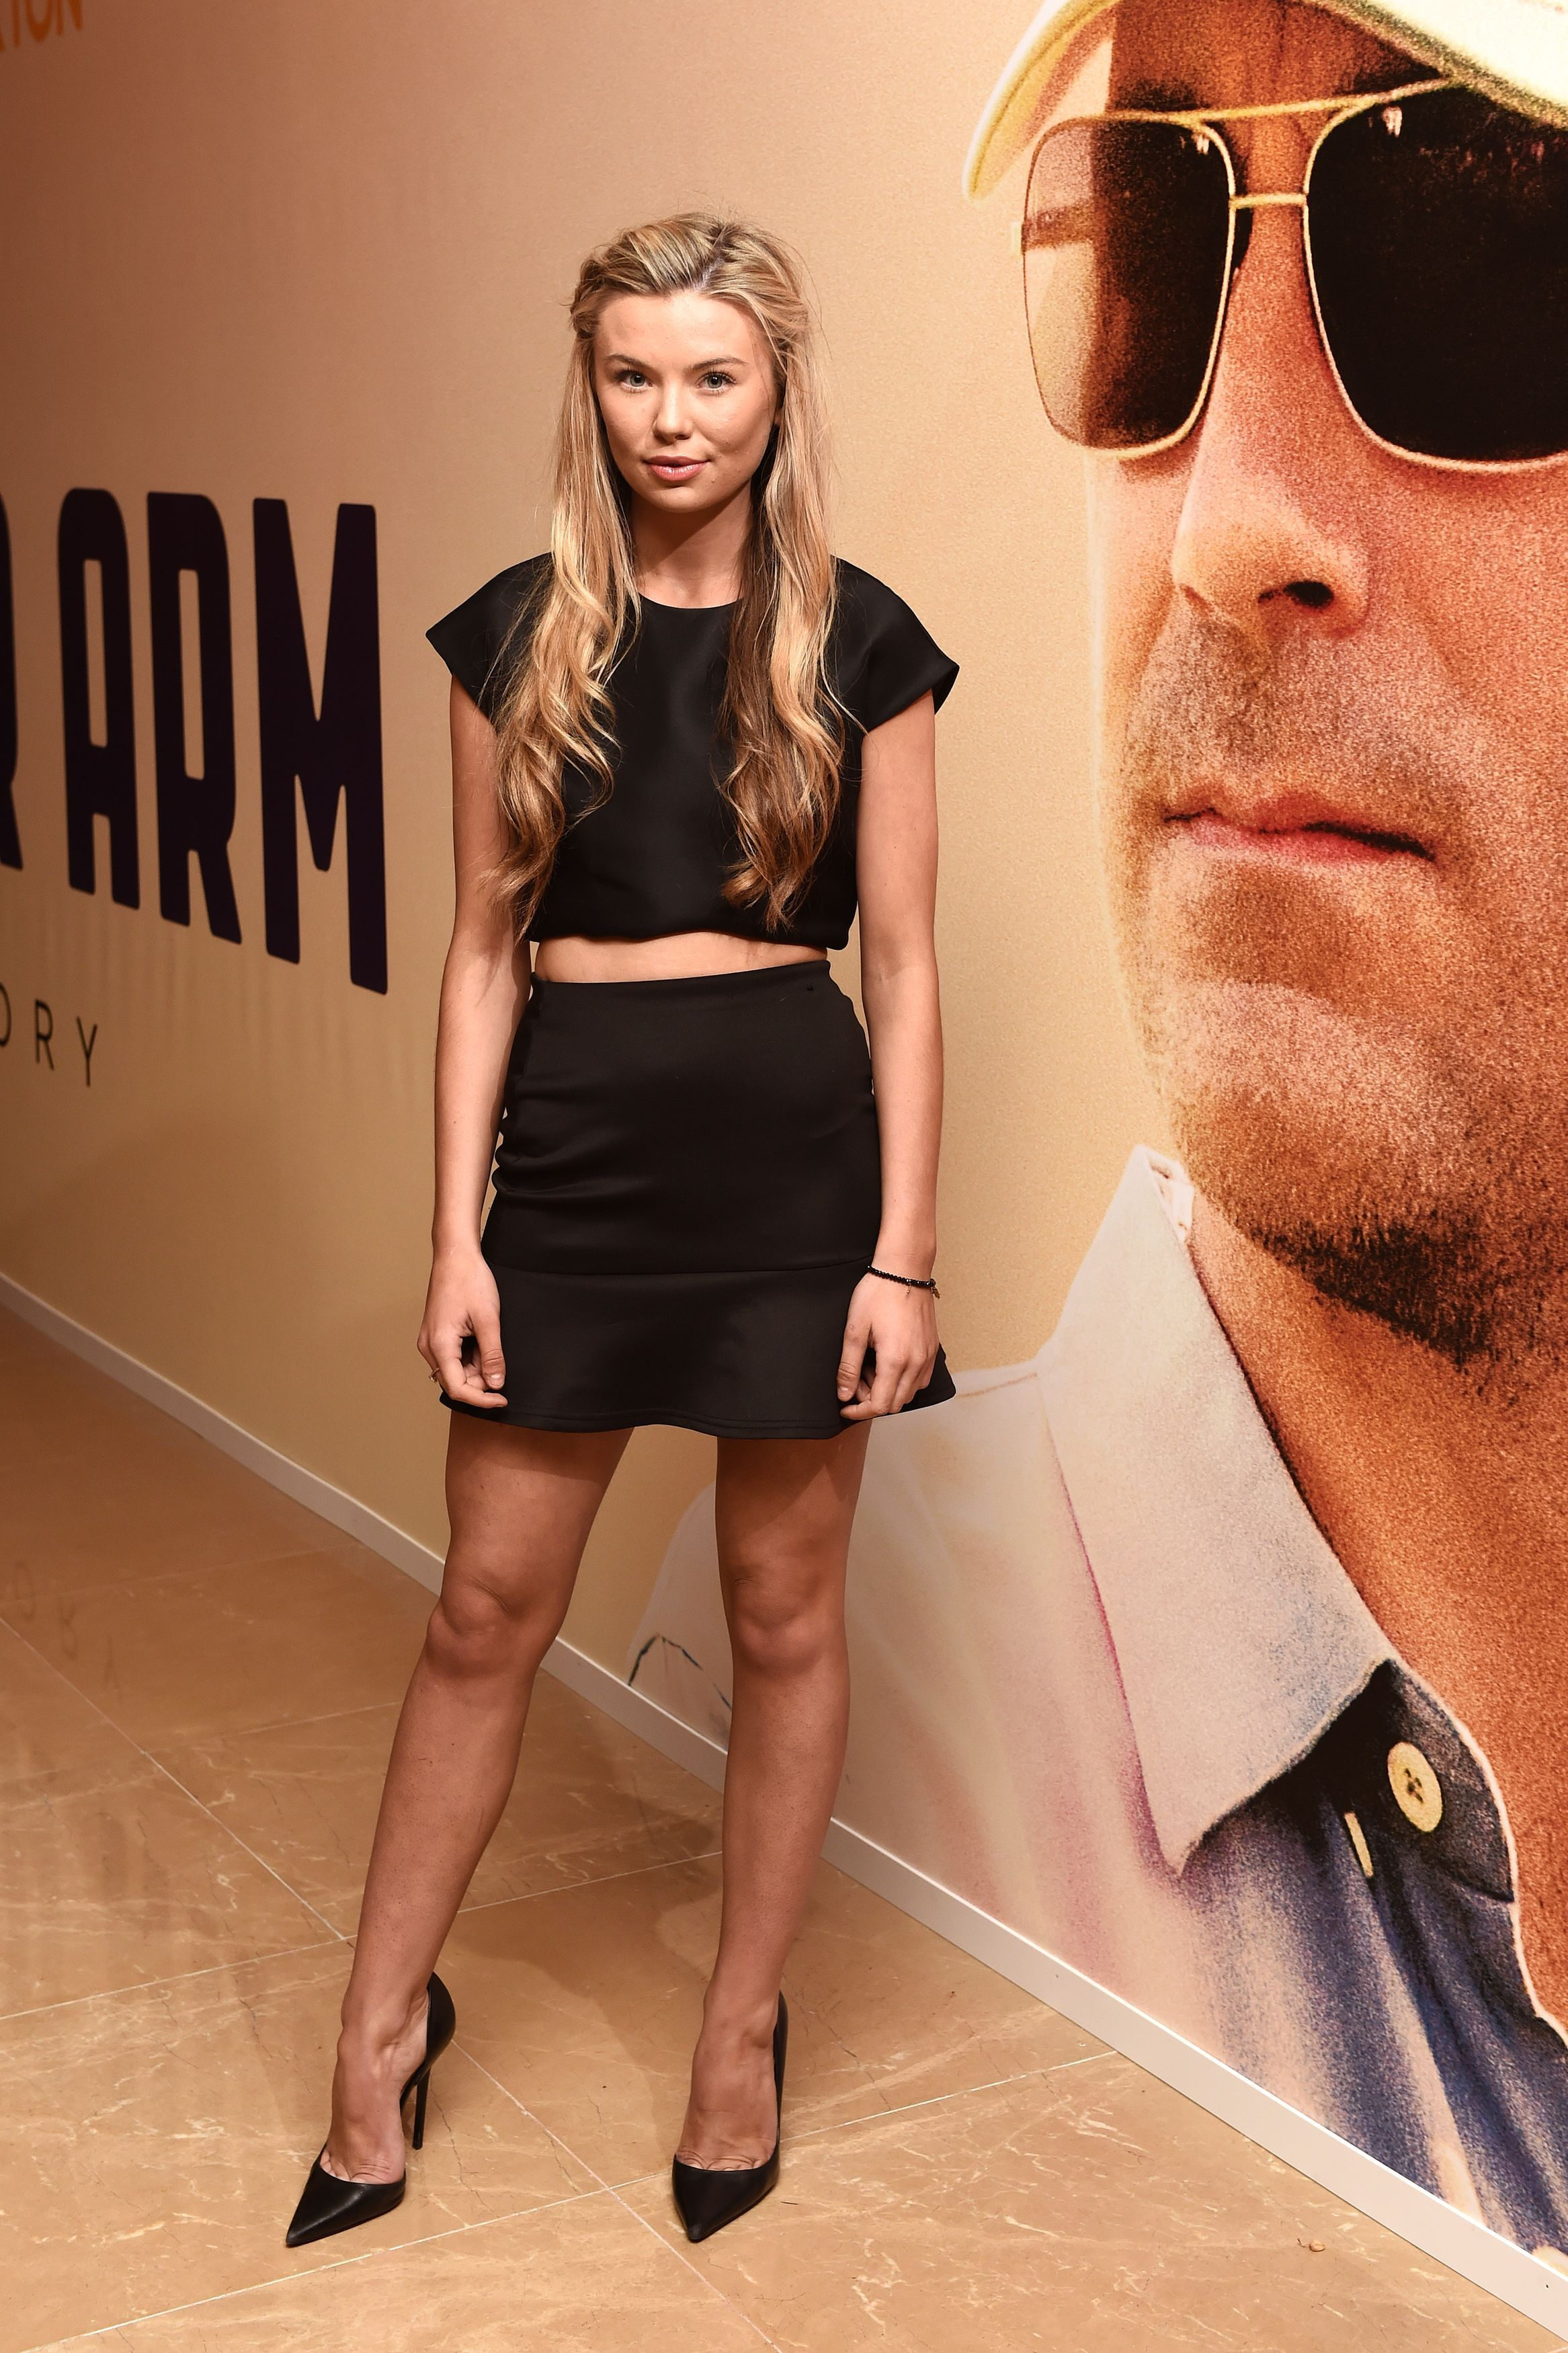 Georgia Toffolo attending a screening for new film Million Dollar Arm at the Mayfair Hotel in London